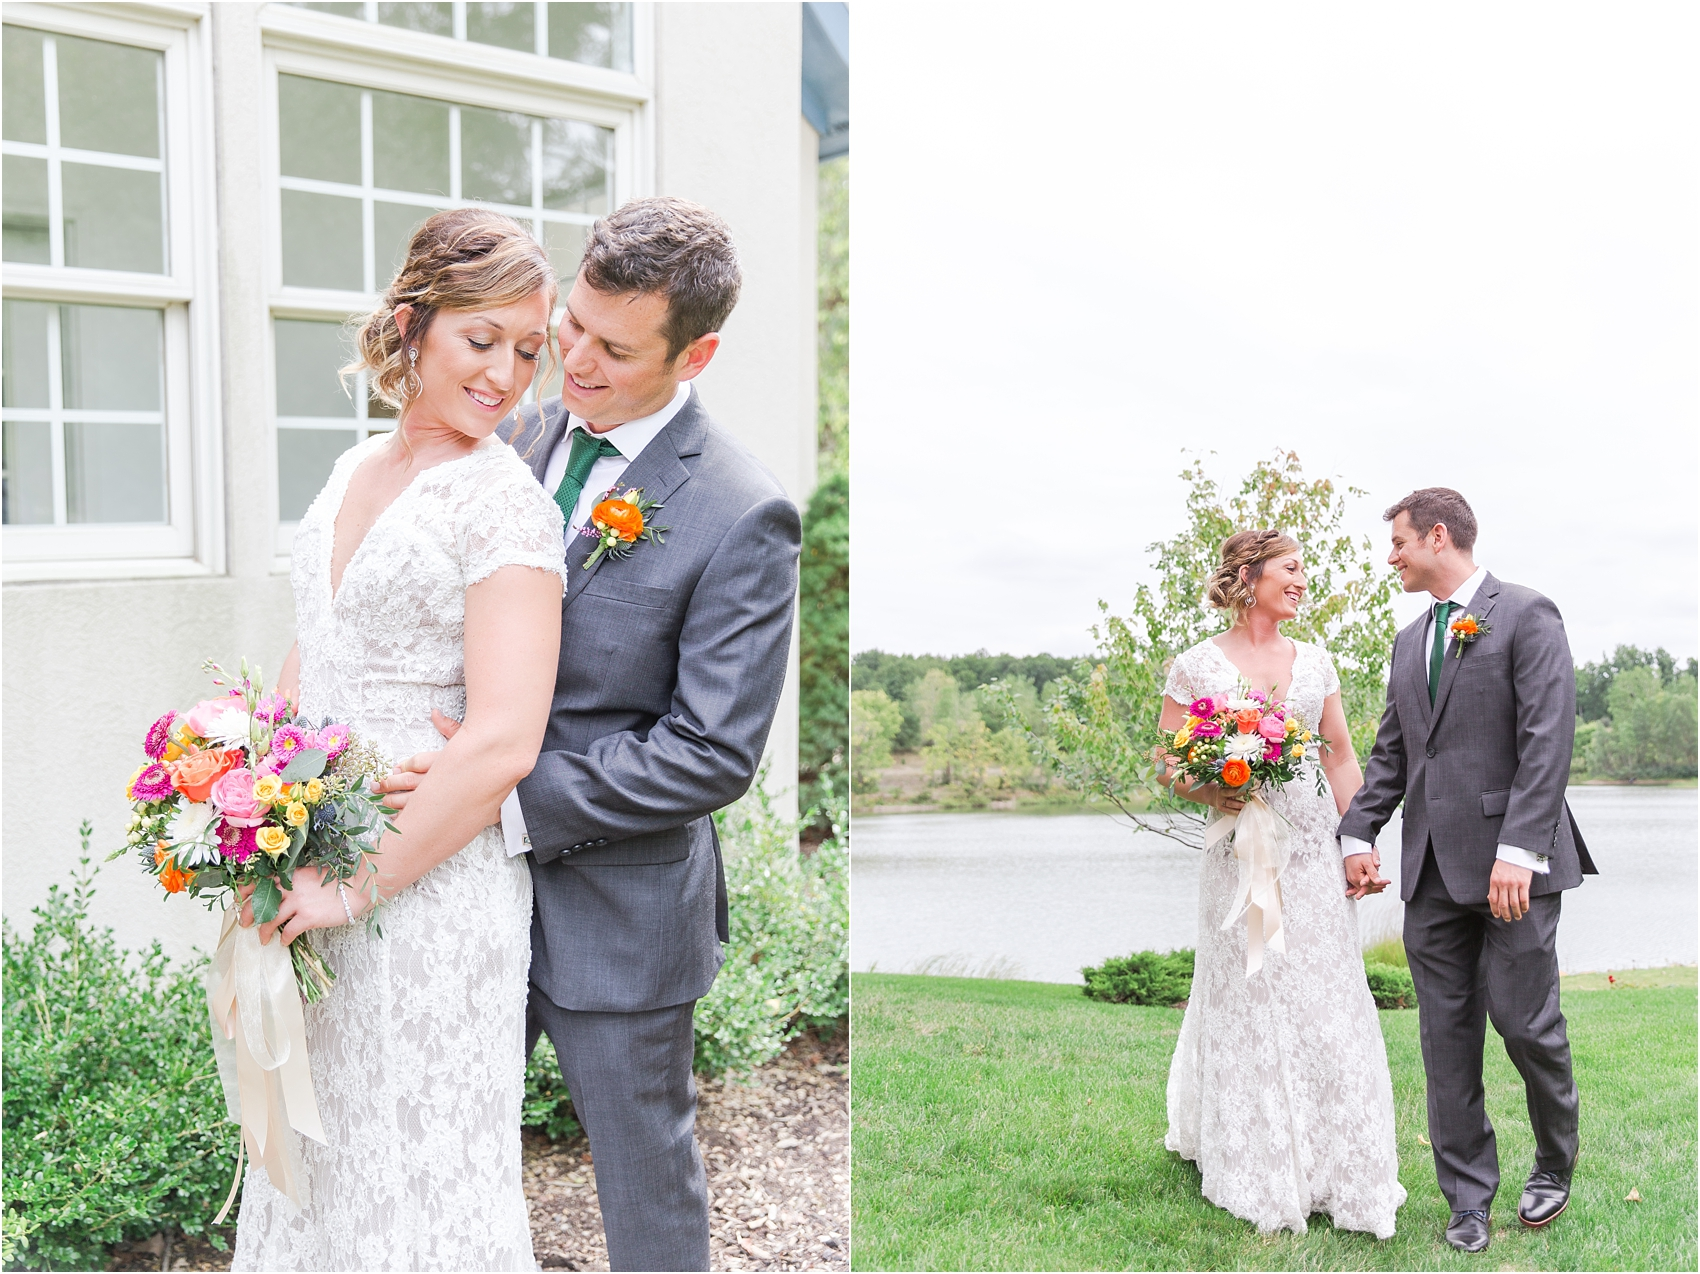 romantic-intimate-backyard-wedding-photos-at-private-estate-in-ann-arbor-mi-by-courtney-carolyn-photography_0042.jpg